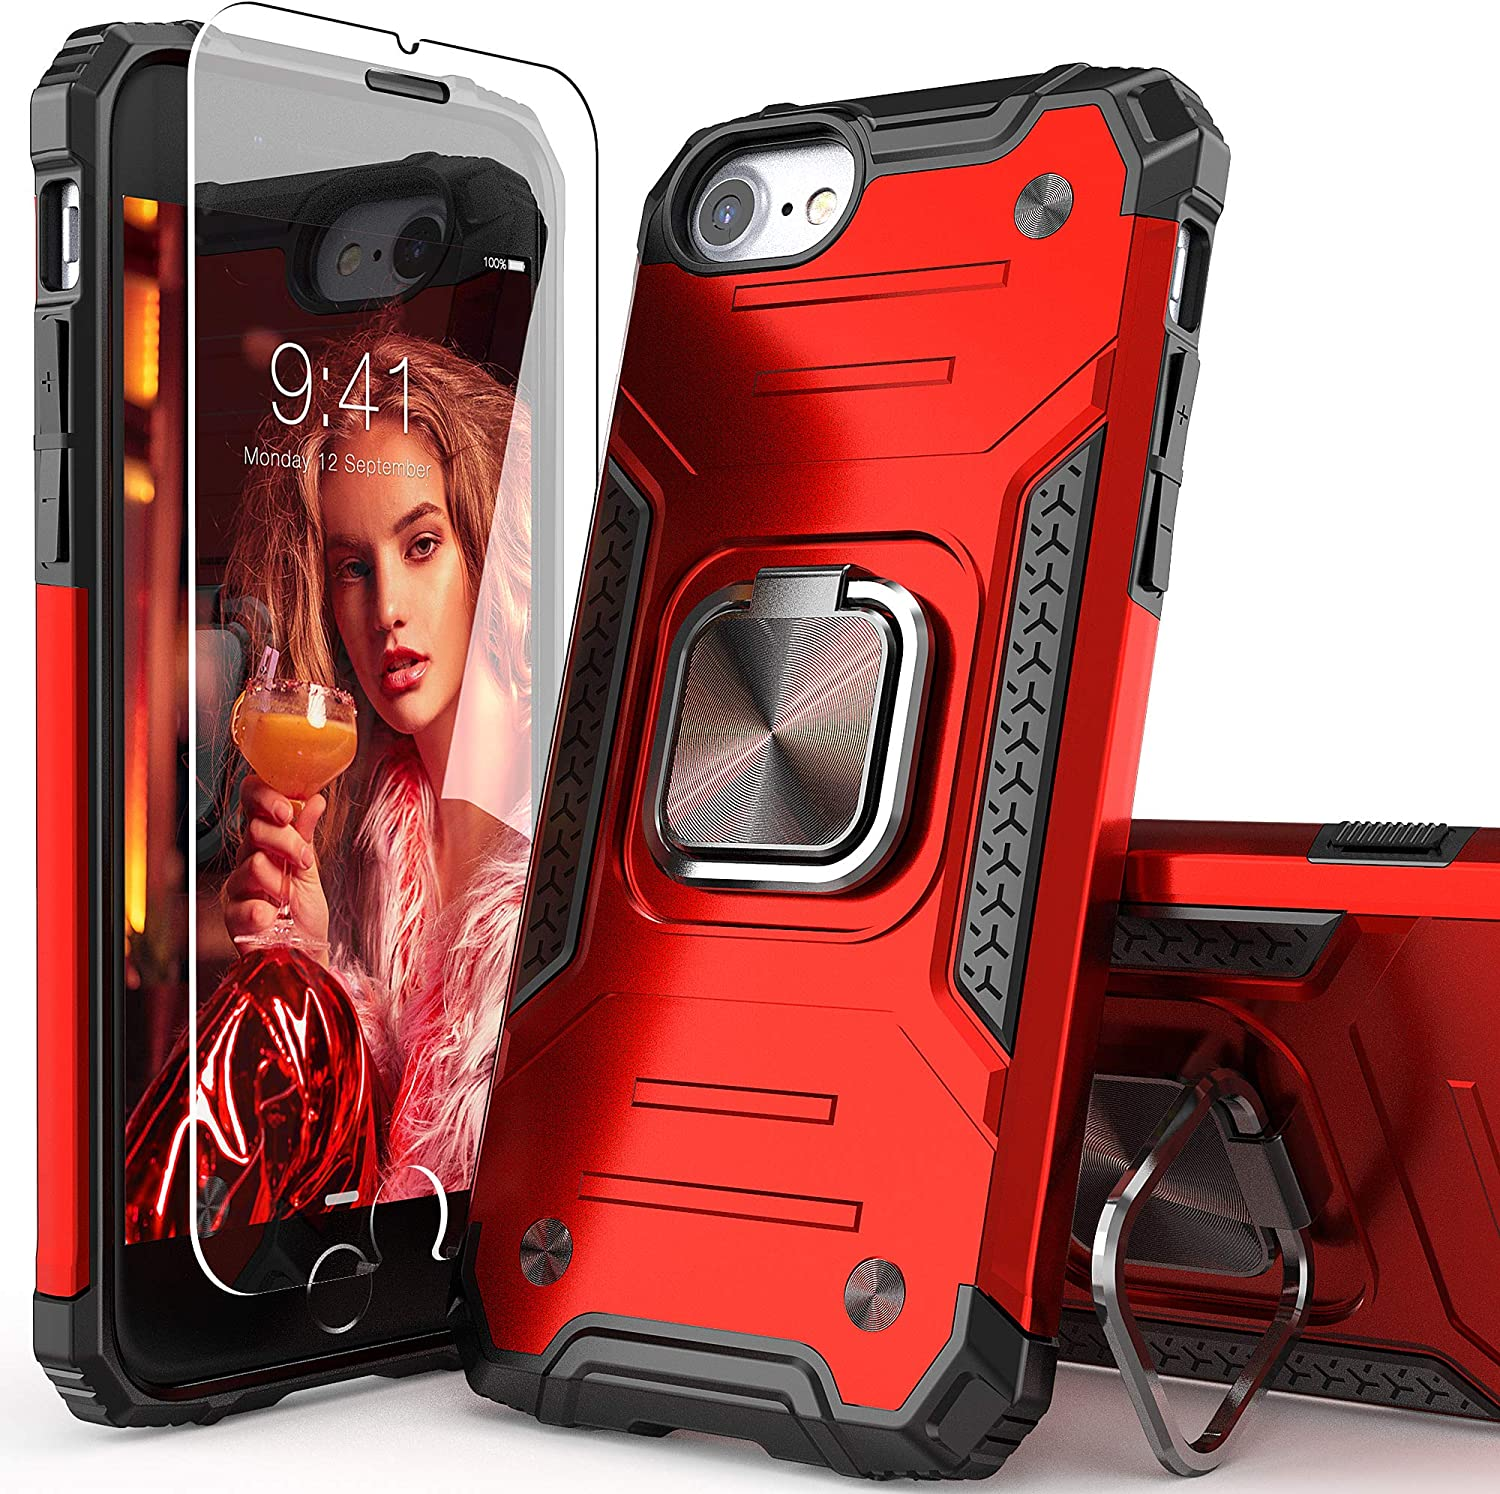 IDYStar iPhone SE 2020 Case with Tempered Glass Screen Protector, Hybrid Drop Test Cover with Card Mount Kickstand Slim Fit Protective Phone Case for iPhone 6/6s/7/8/SE 2020, Red